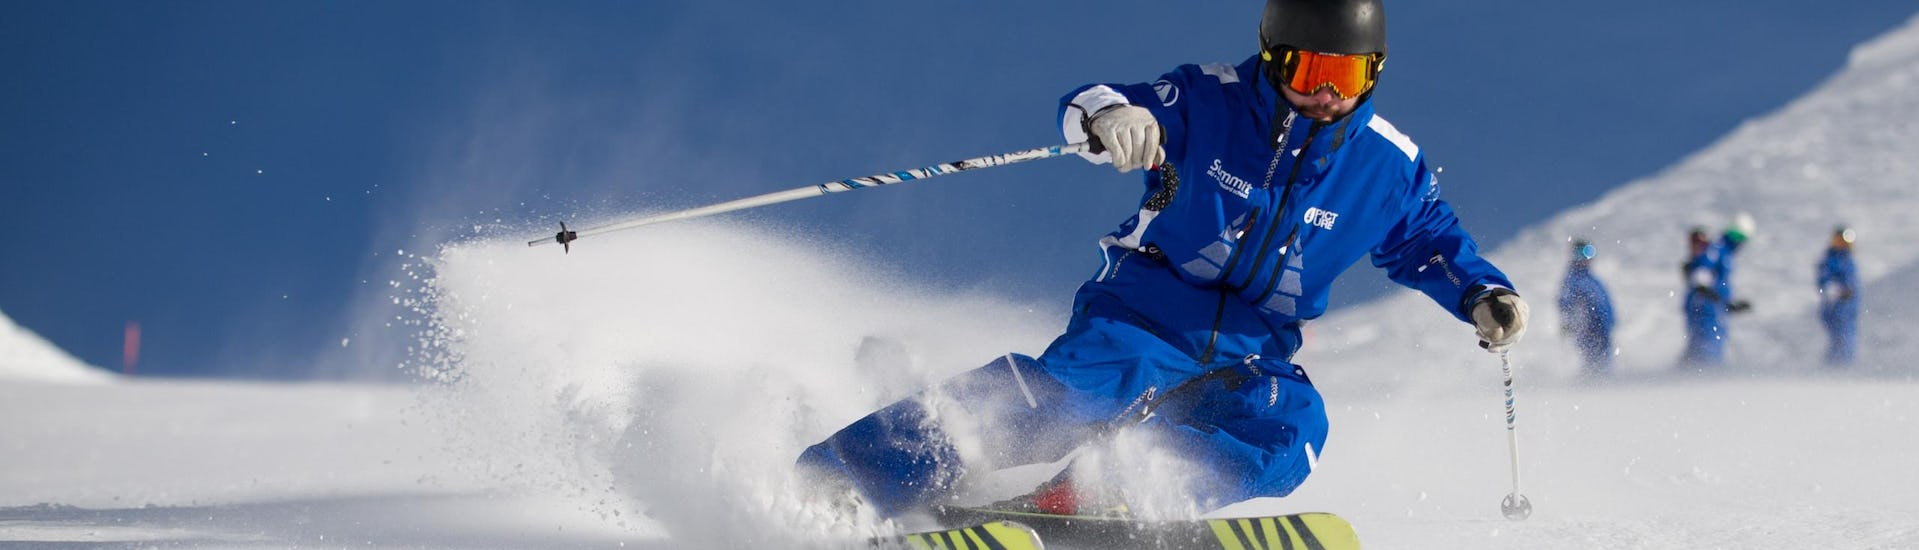 Adult Private Ski Lessons - All Levels - Afternoon